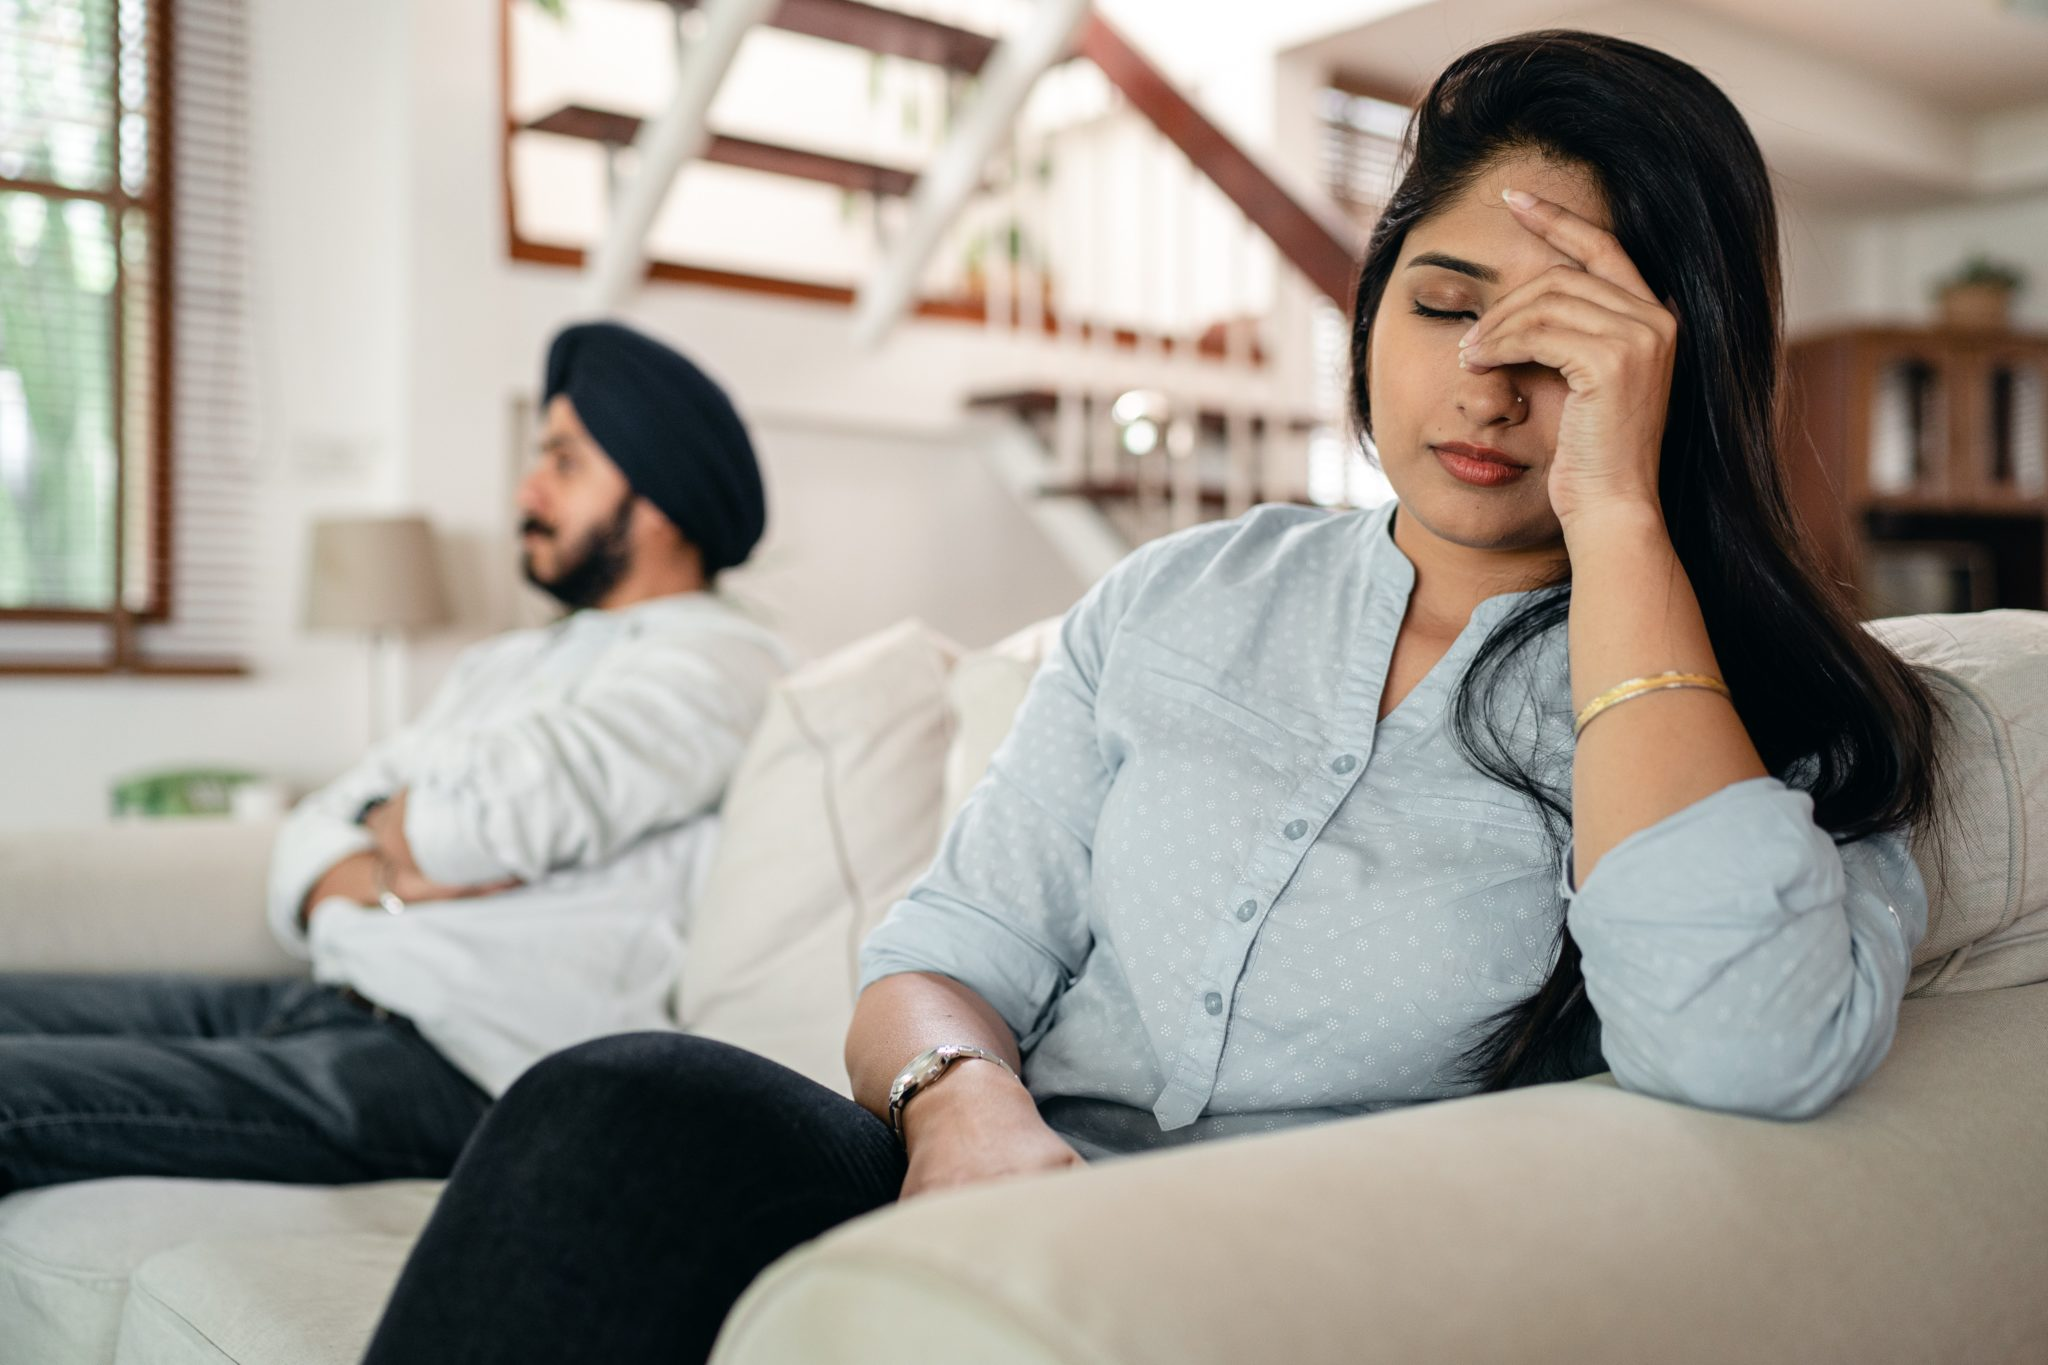 Is divorce the only option? - Galbraith Family Law